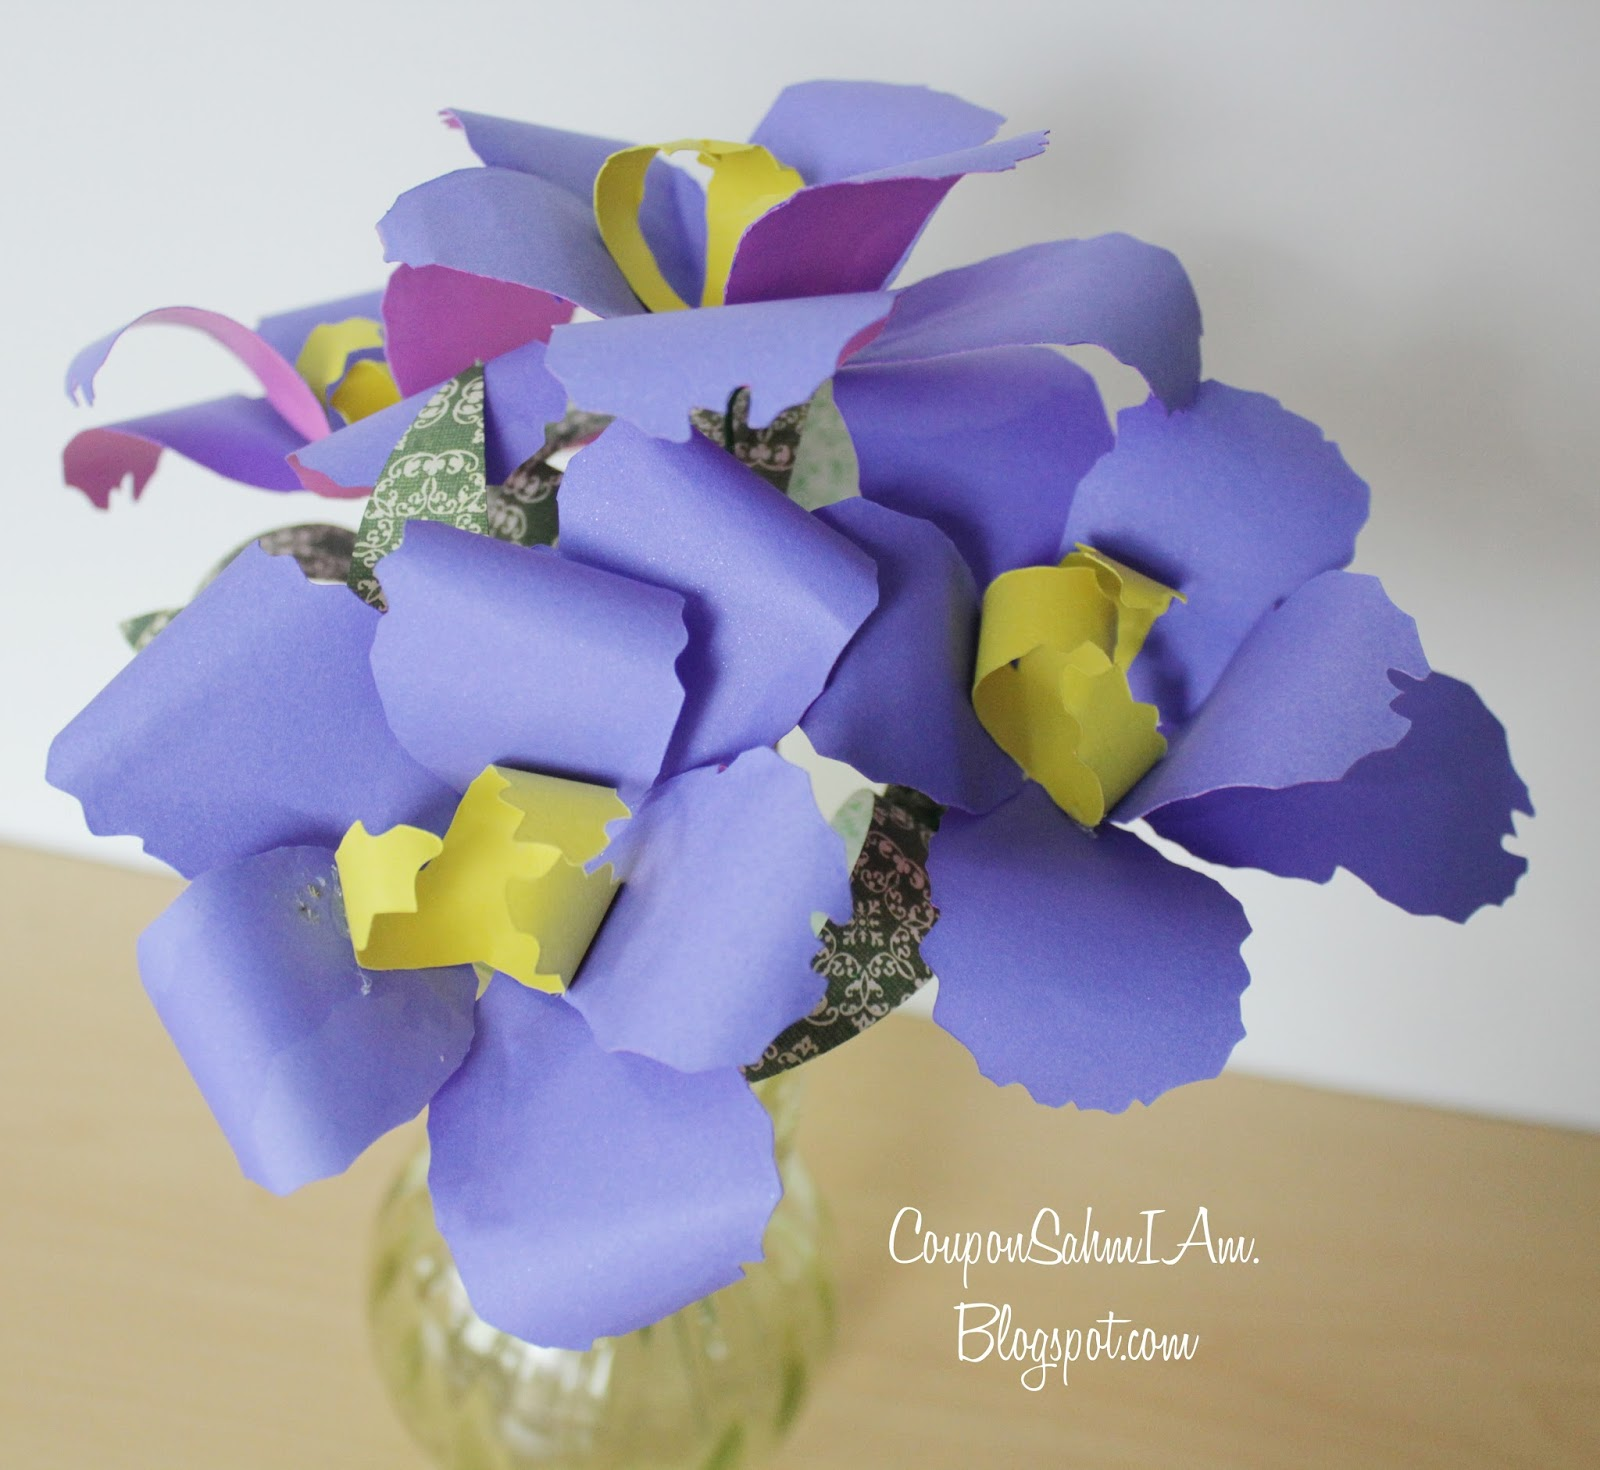 Coupon sahm i am paper flower recital bouquet periwinkle blue iriss yes please i can see iriss being a very popular paper flower for any occasion they make every one feel a bit more peace and izmirmasajfo